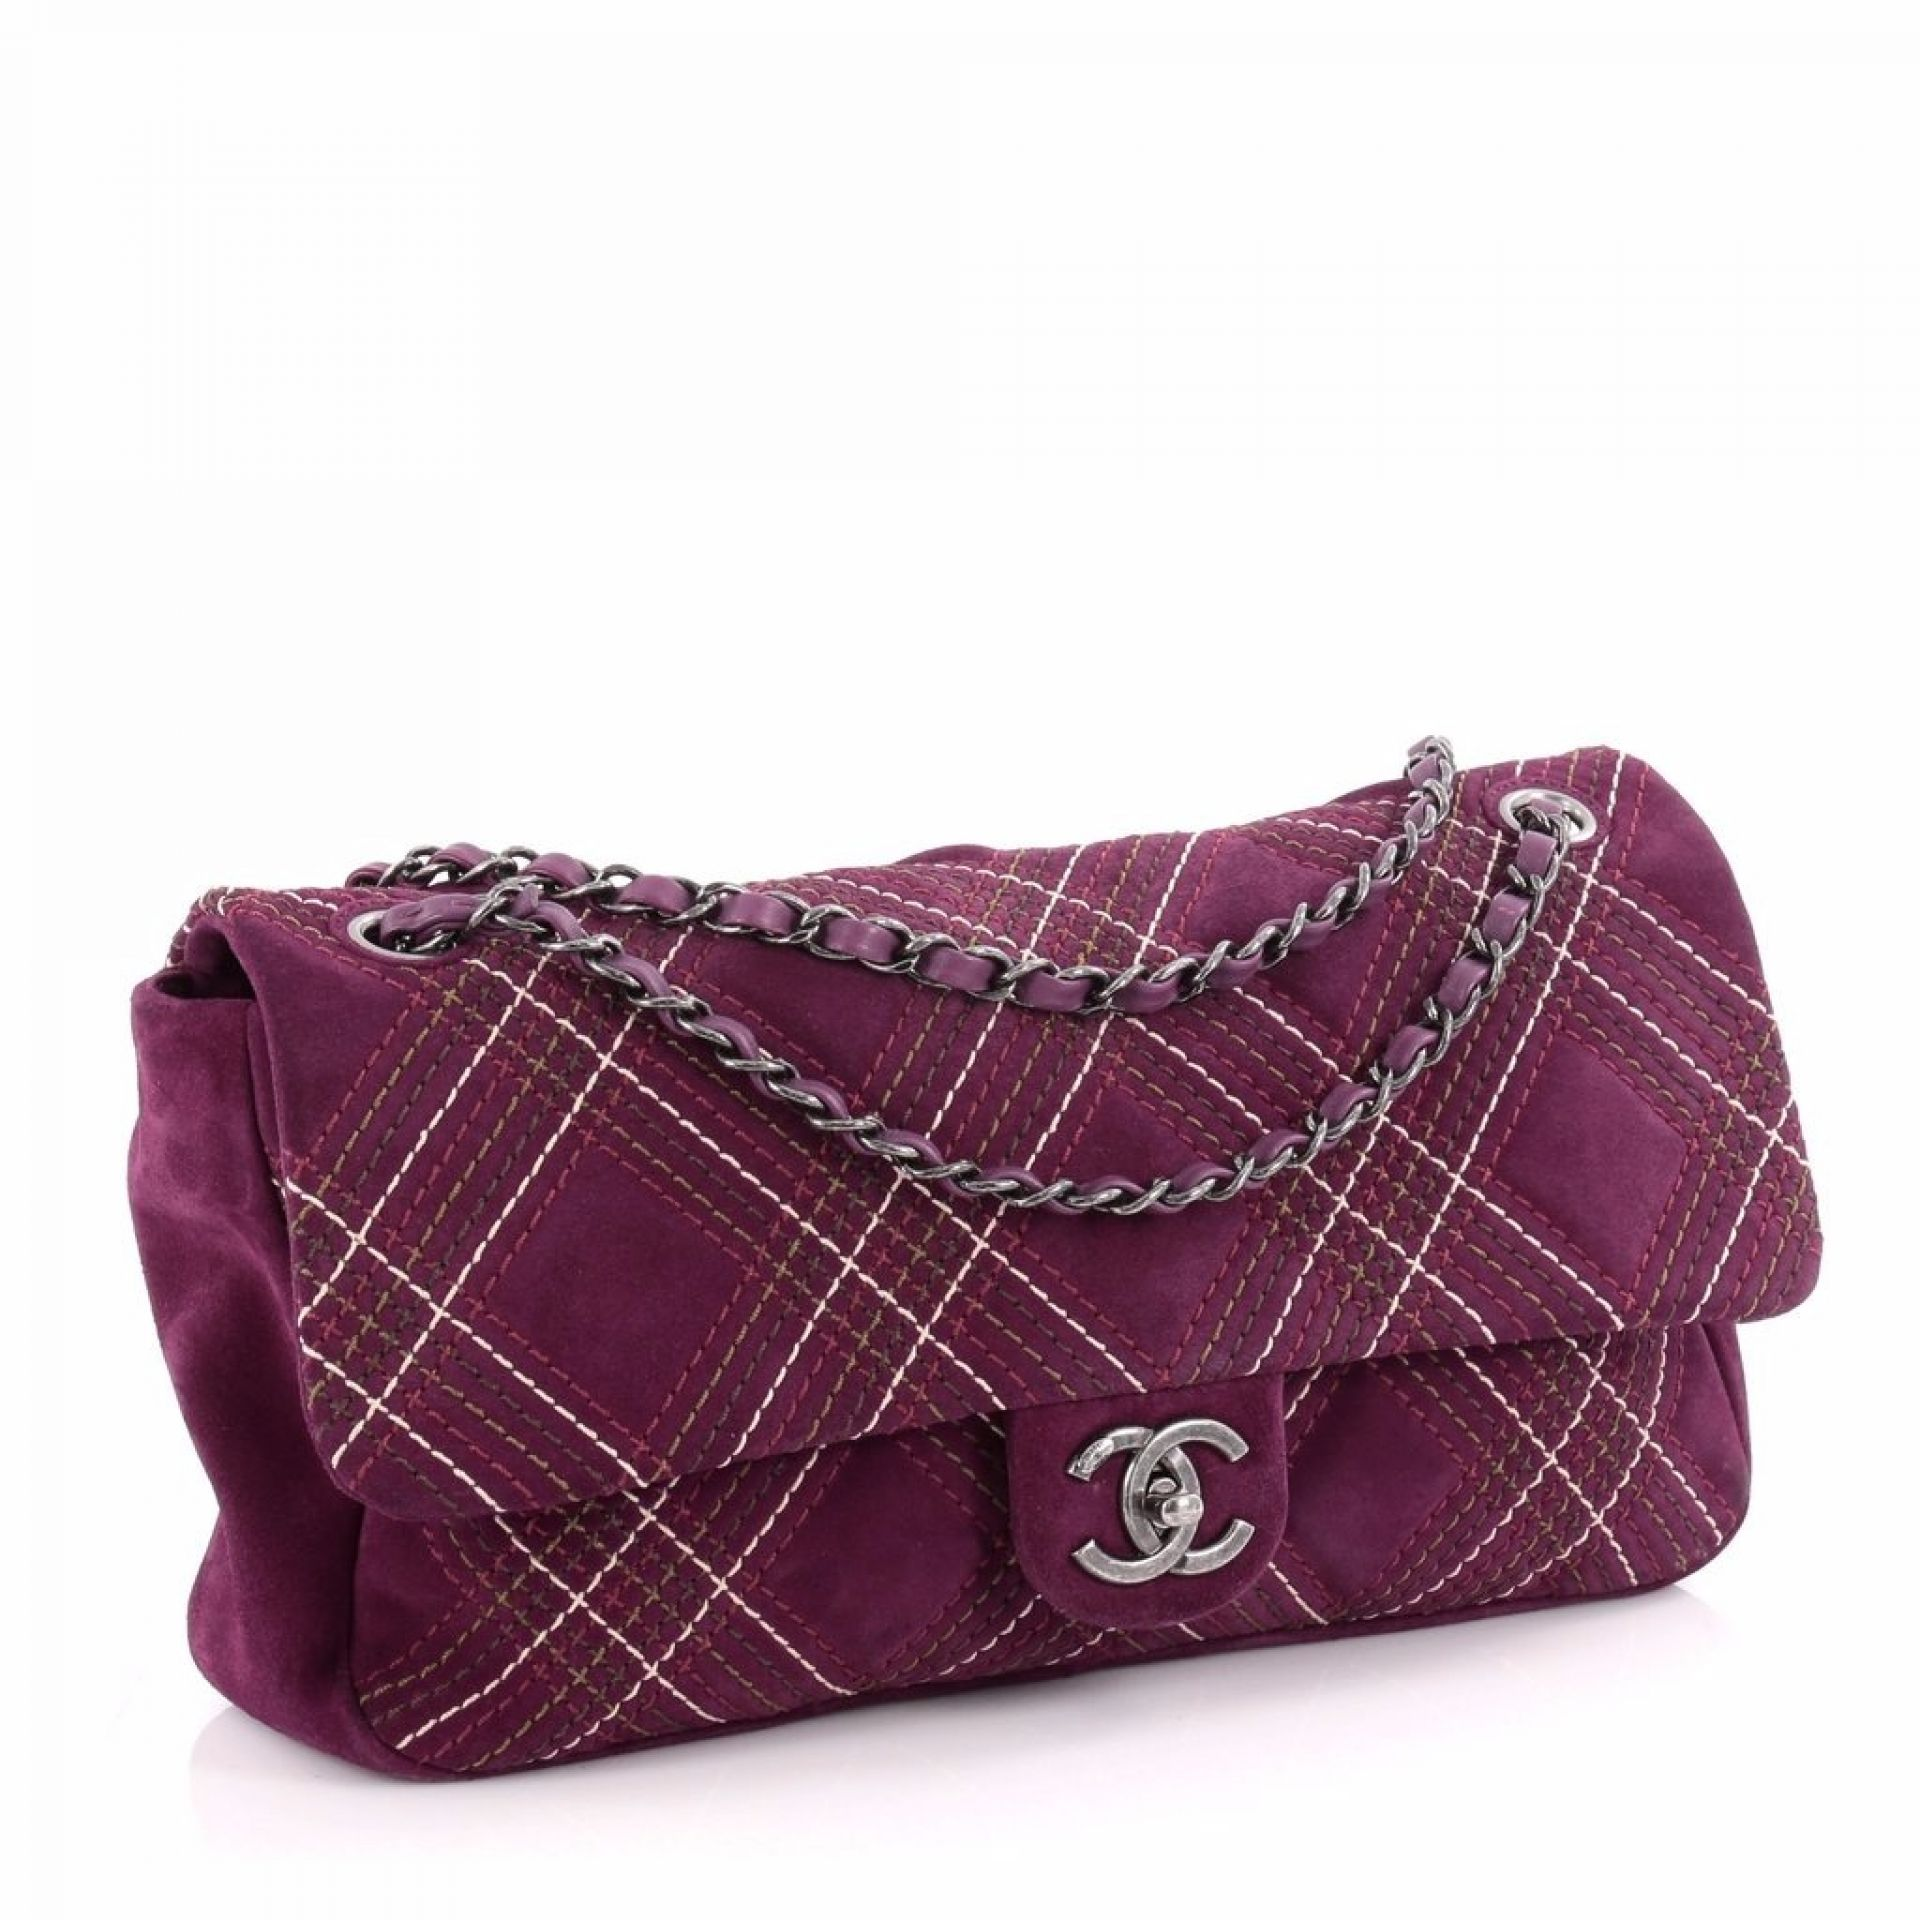 Chanel Chanel Saltire Flap Bag Stitched Suede Medium